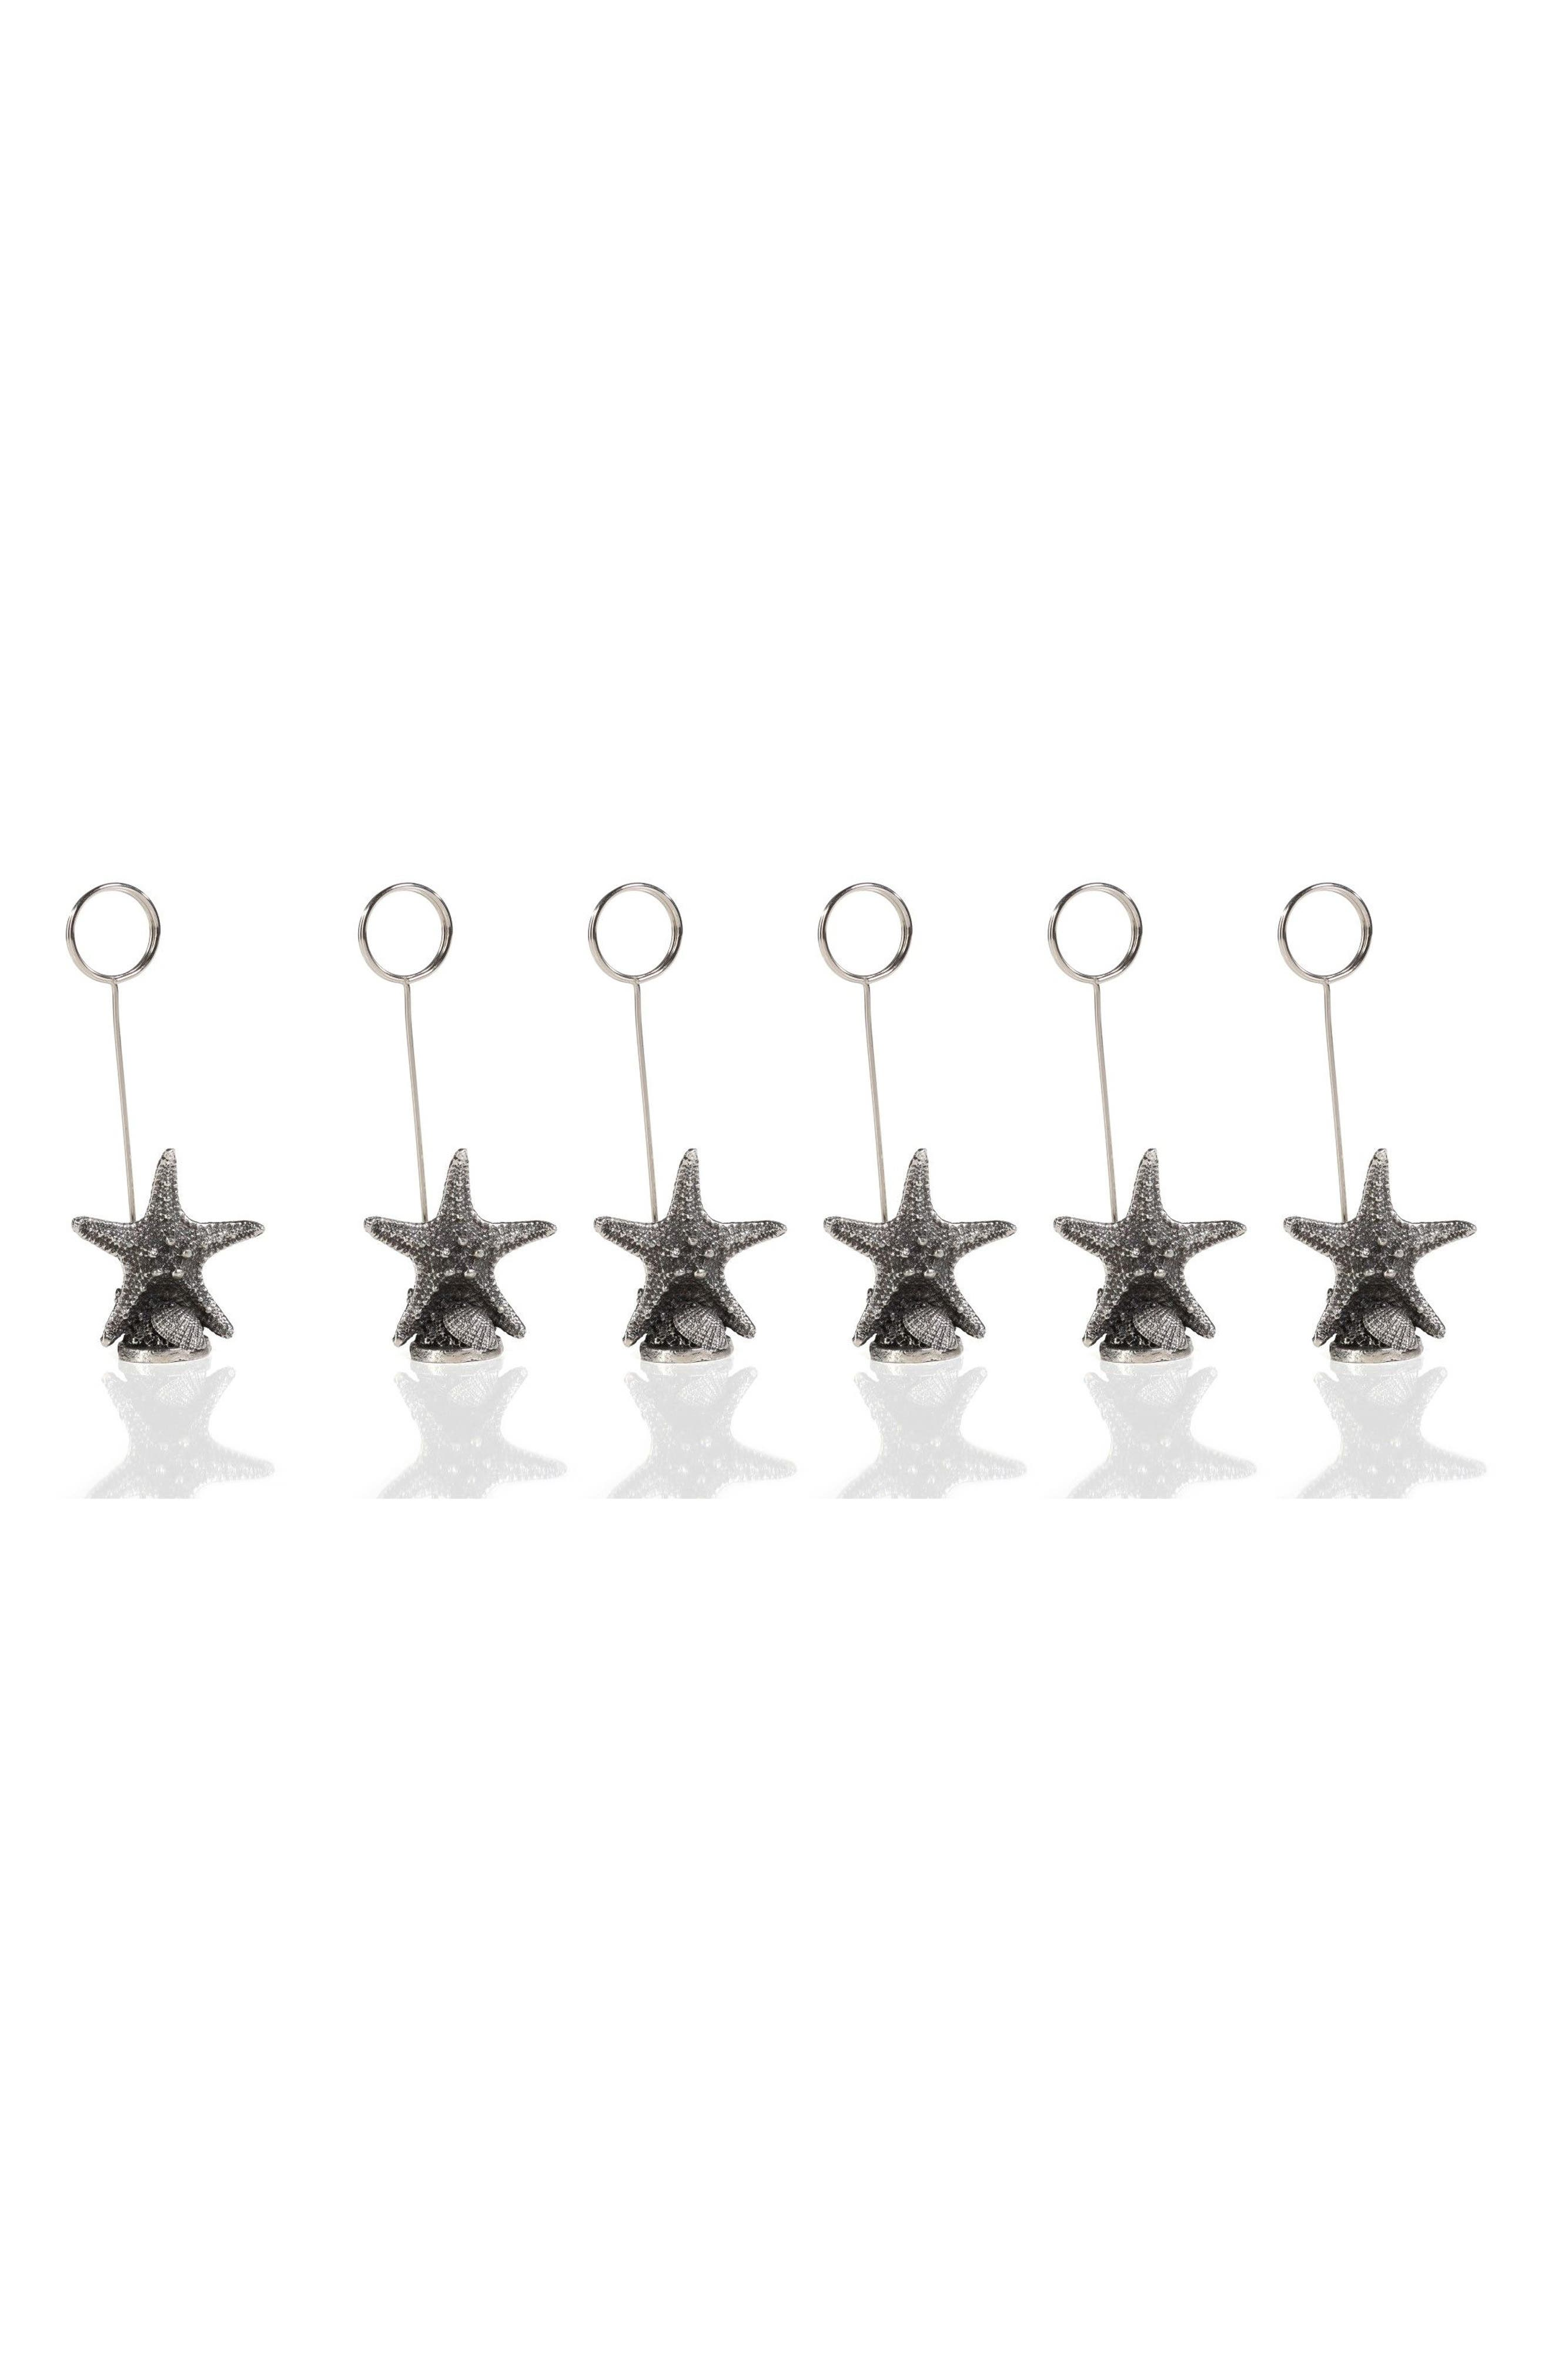 Set of 6 Starfish Name Card Holders,                         Main,                         color, 040